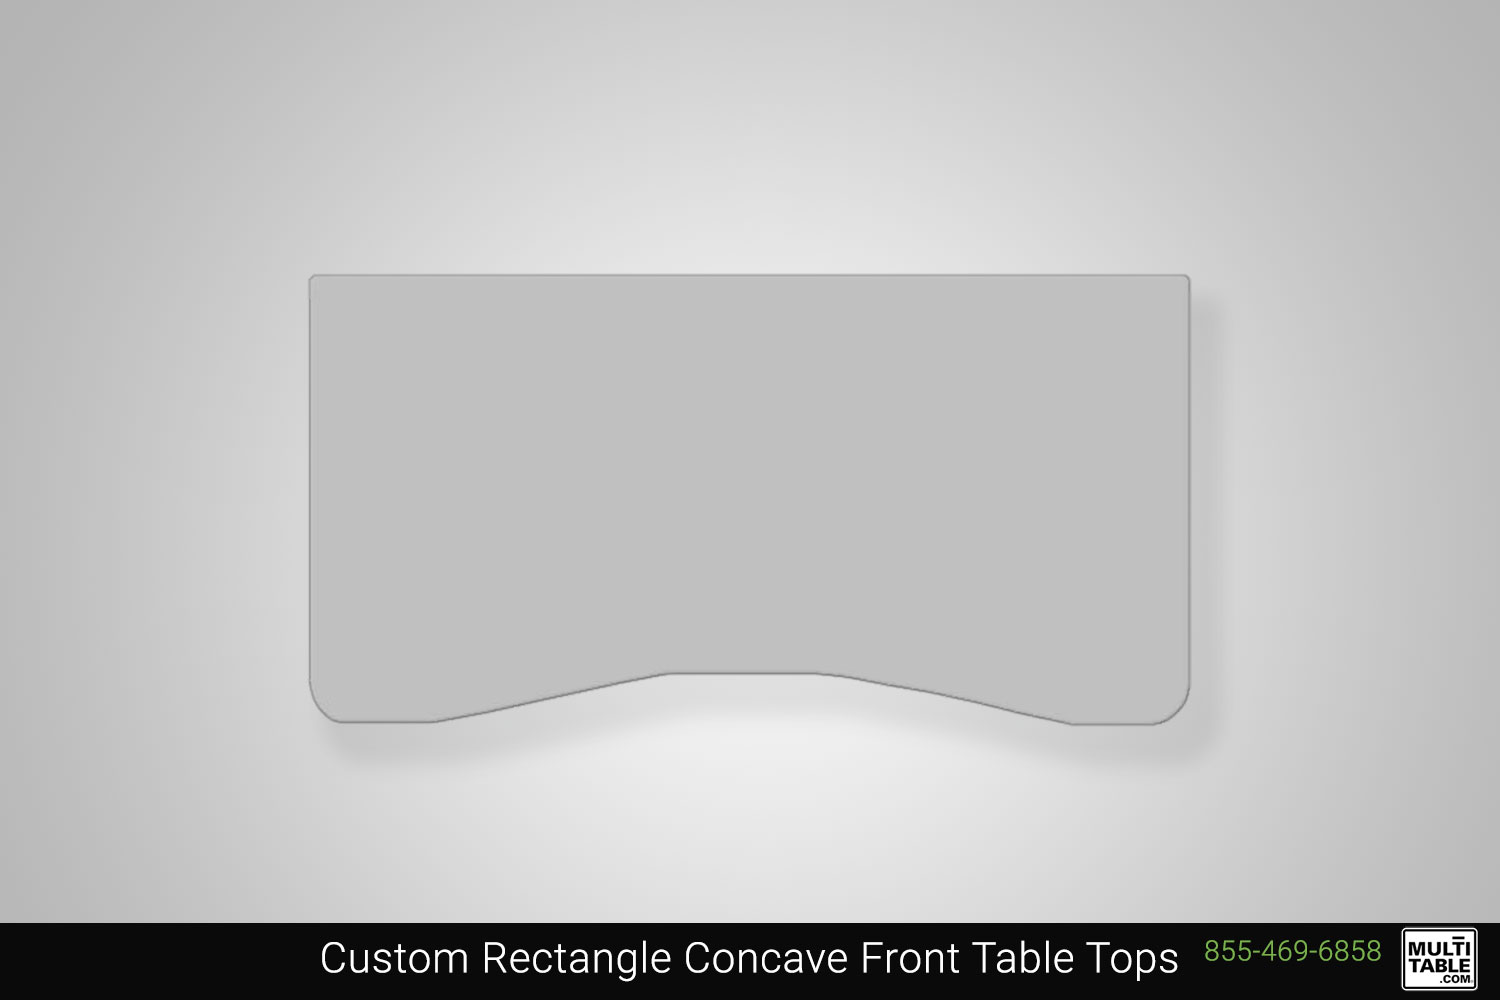 Custom Rectangle Concave Front Standing Desk Table Top Shape Options MultiTable Office Furniture Manufacturing Phoenix Arizona Since 2010